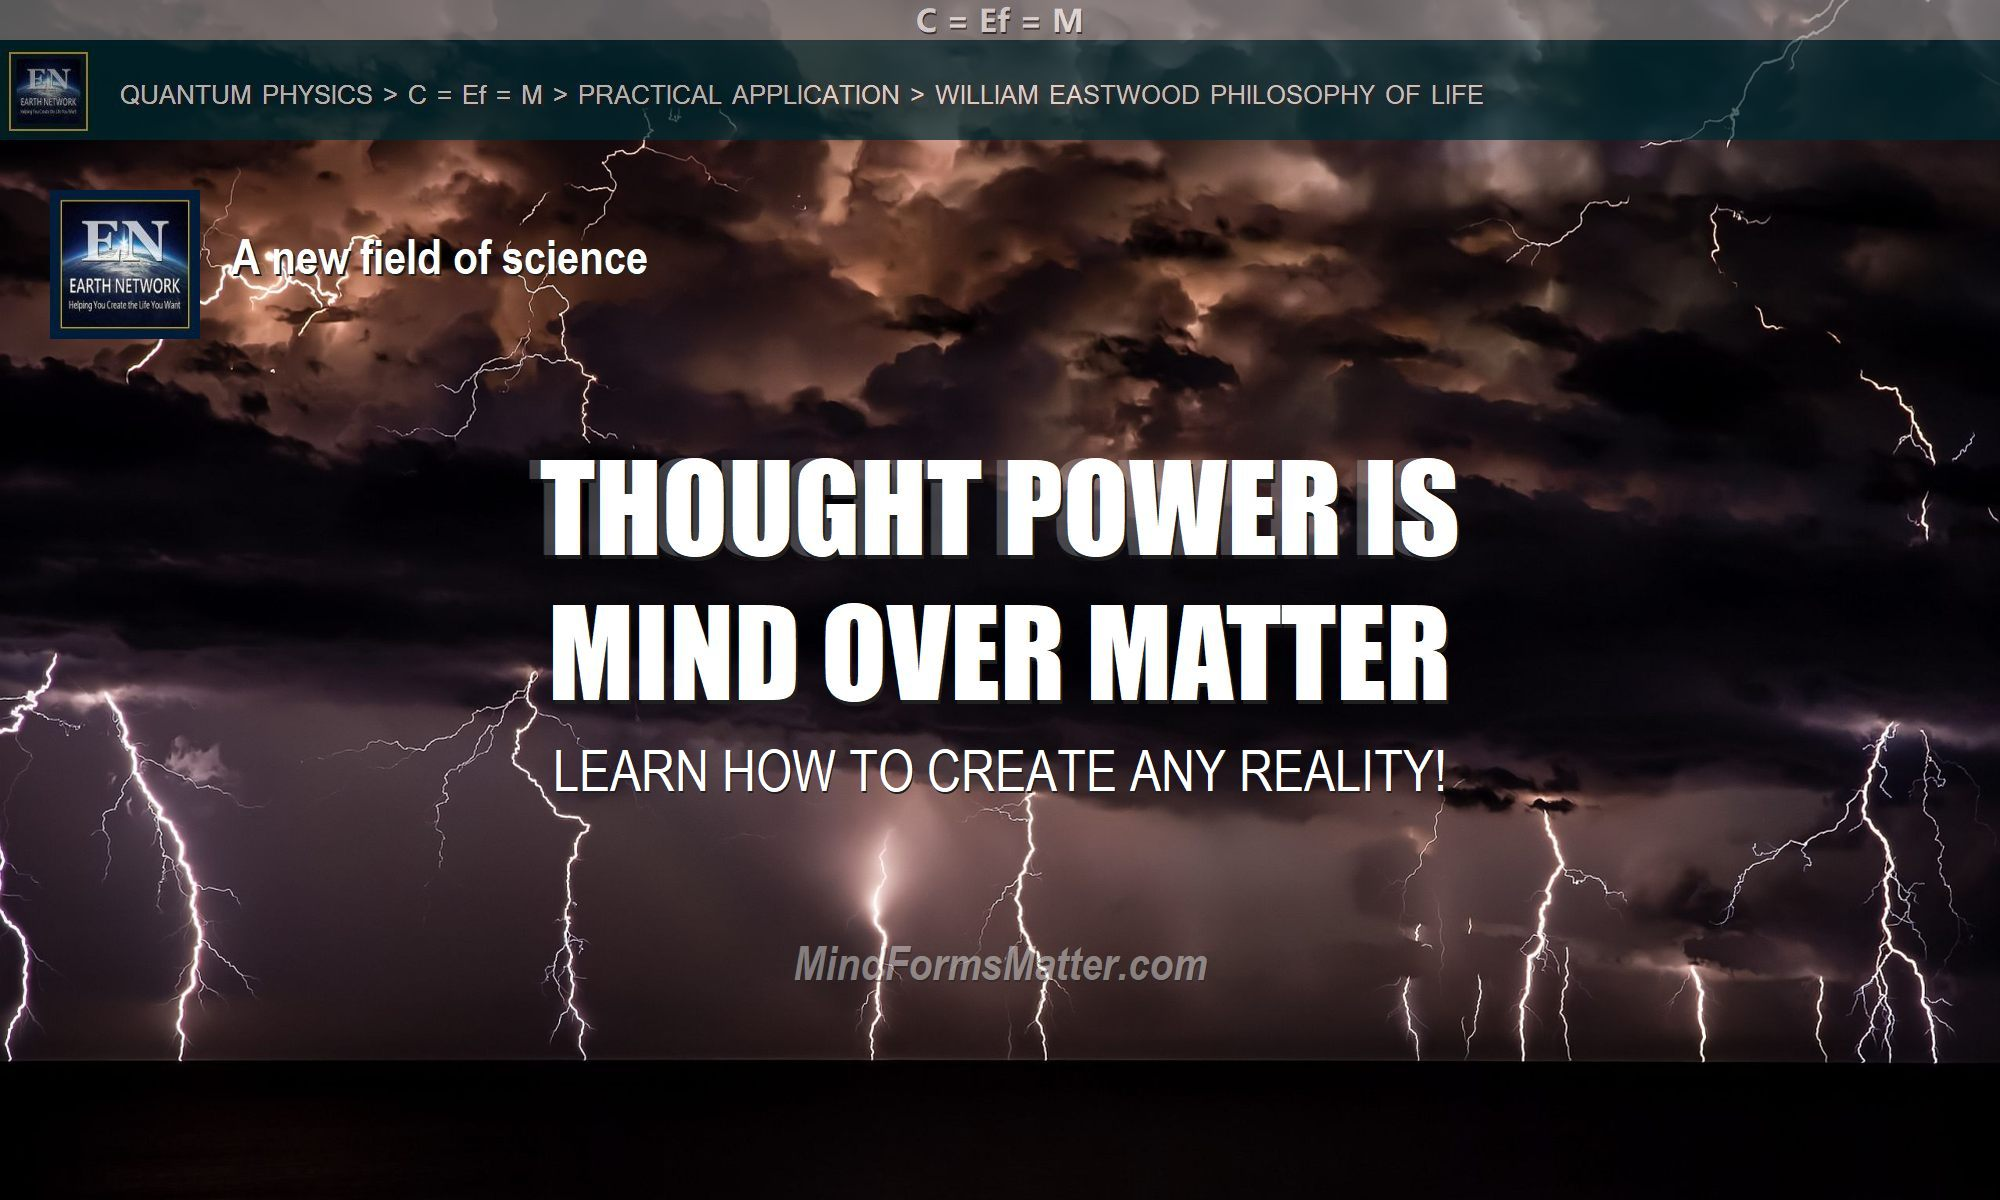 thunder and lightening depict thought-power-mind-over-matter-thoughts-create-your-reality